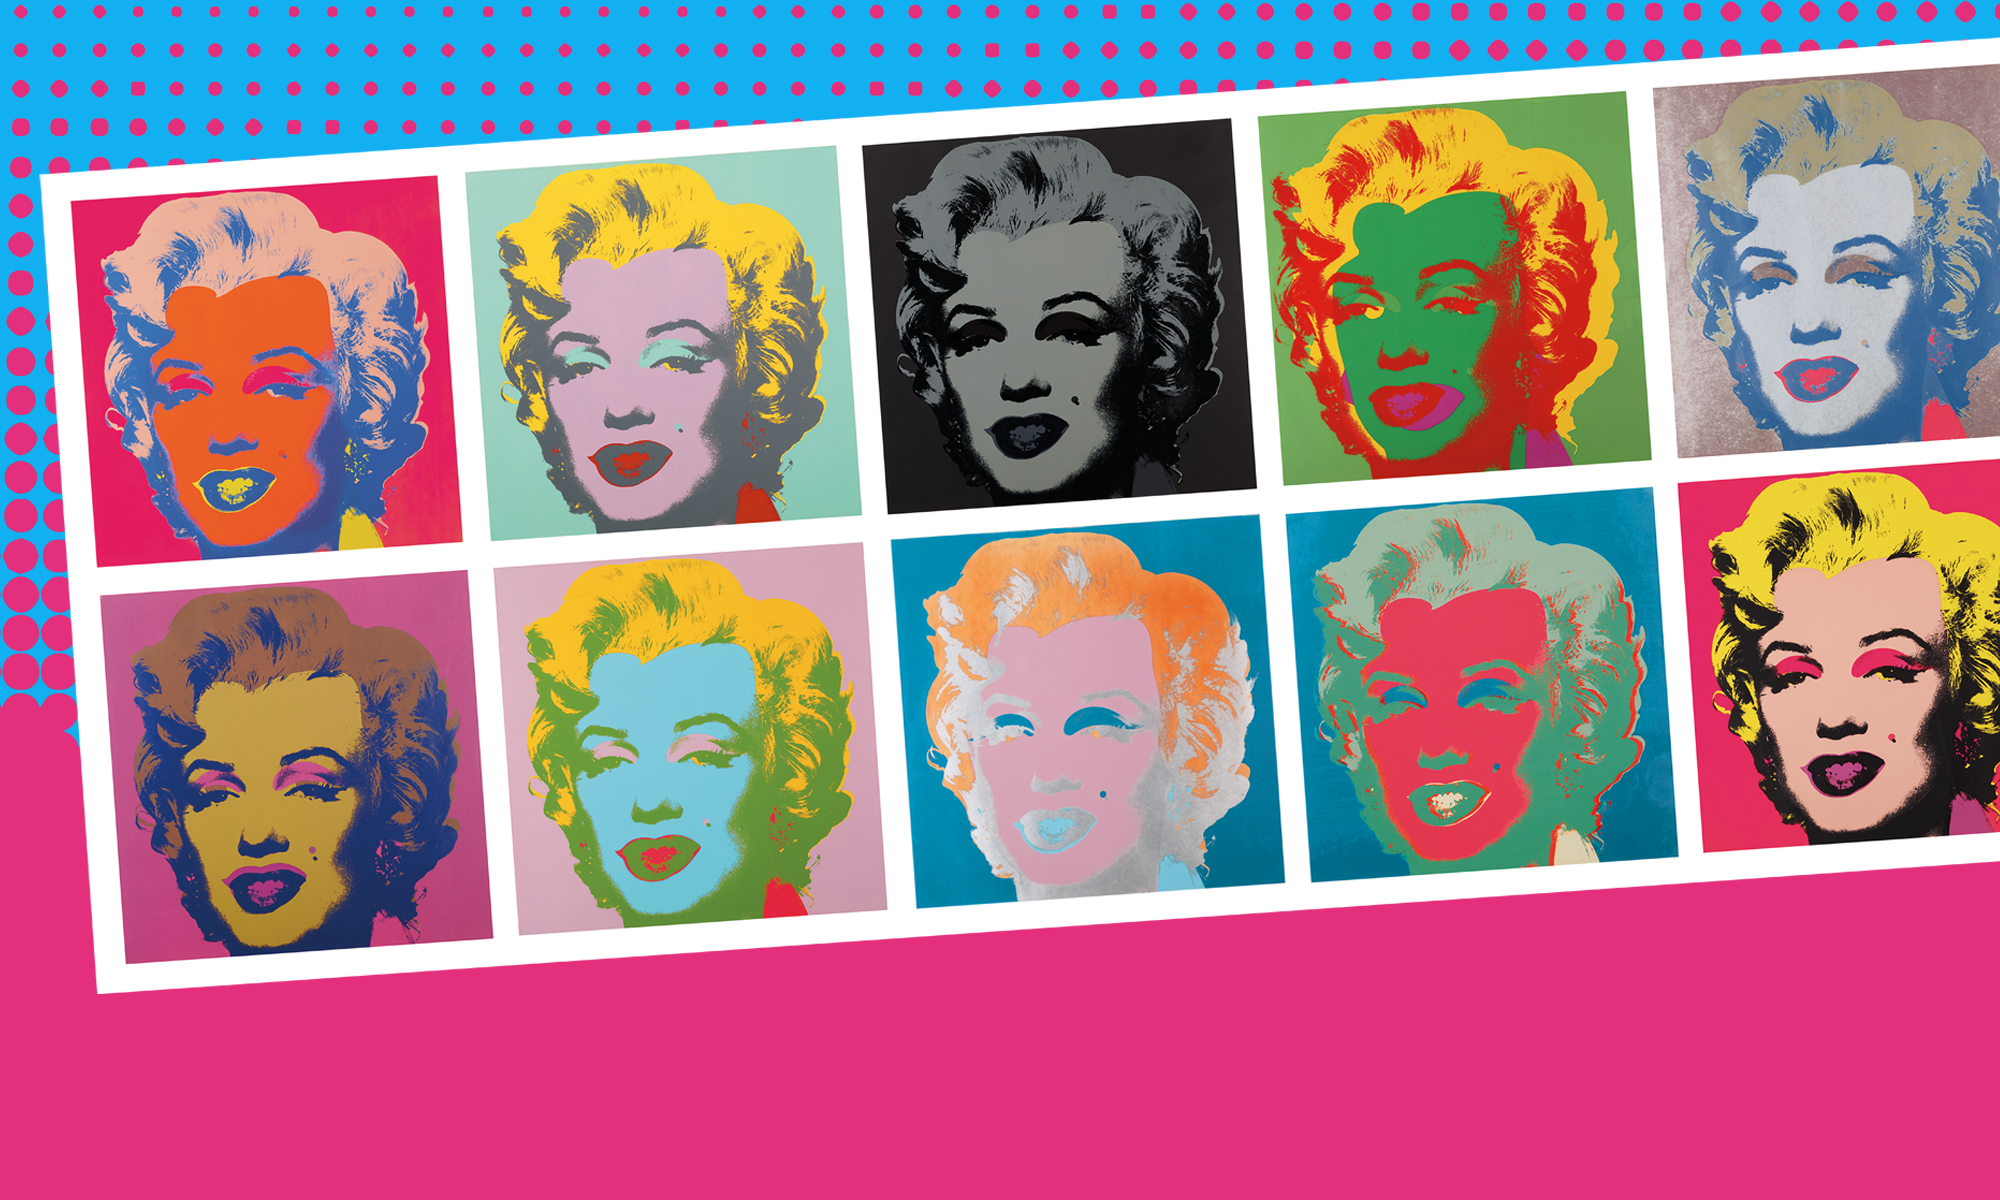 Andy Warhol. Super pop